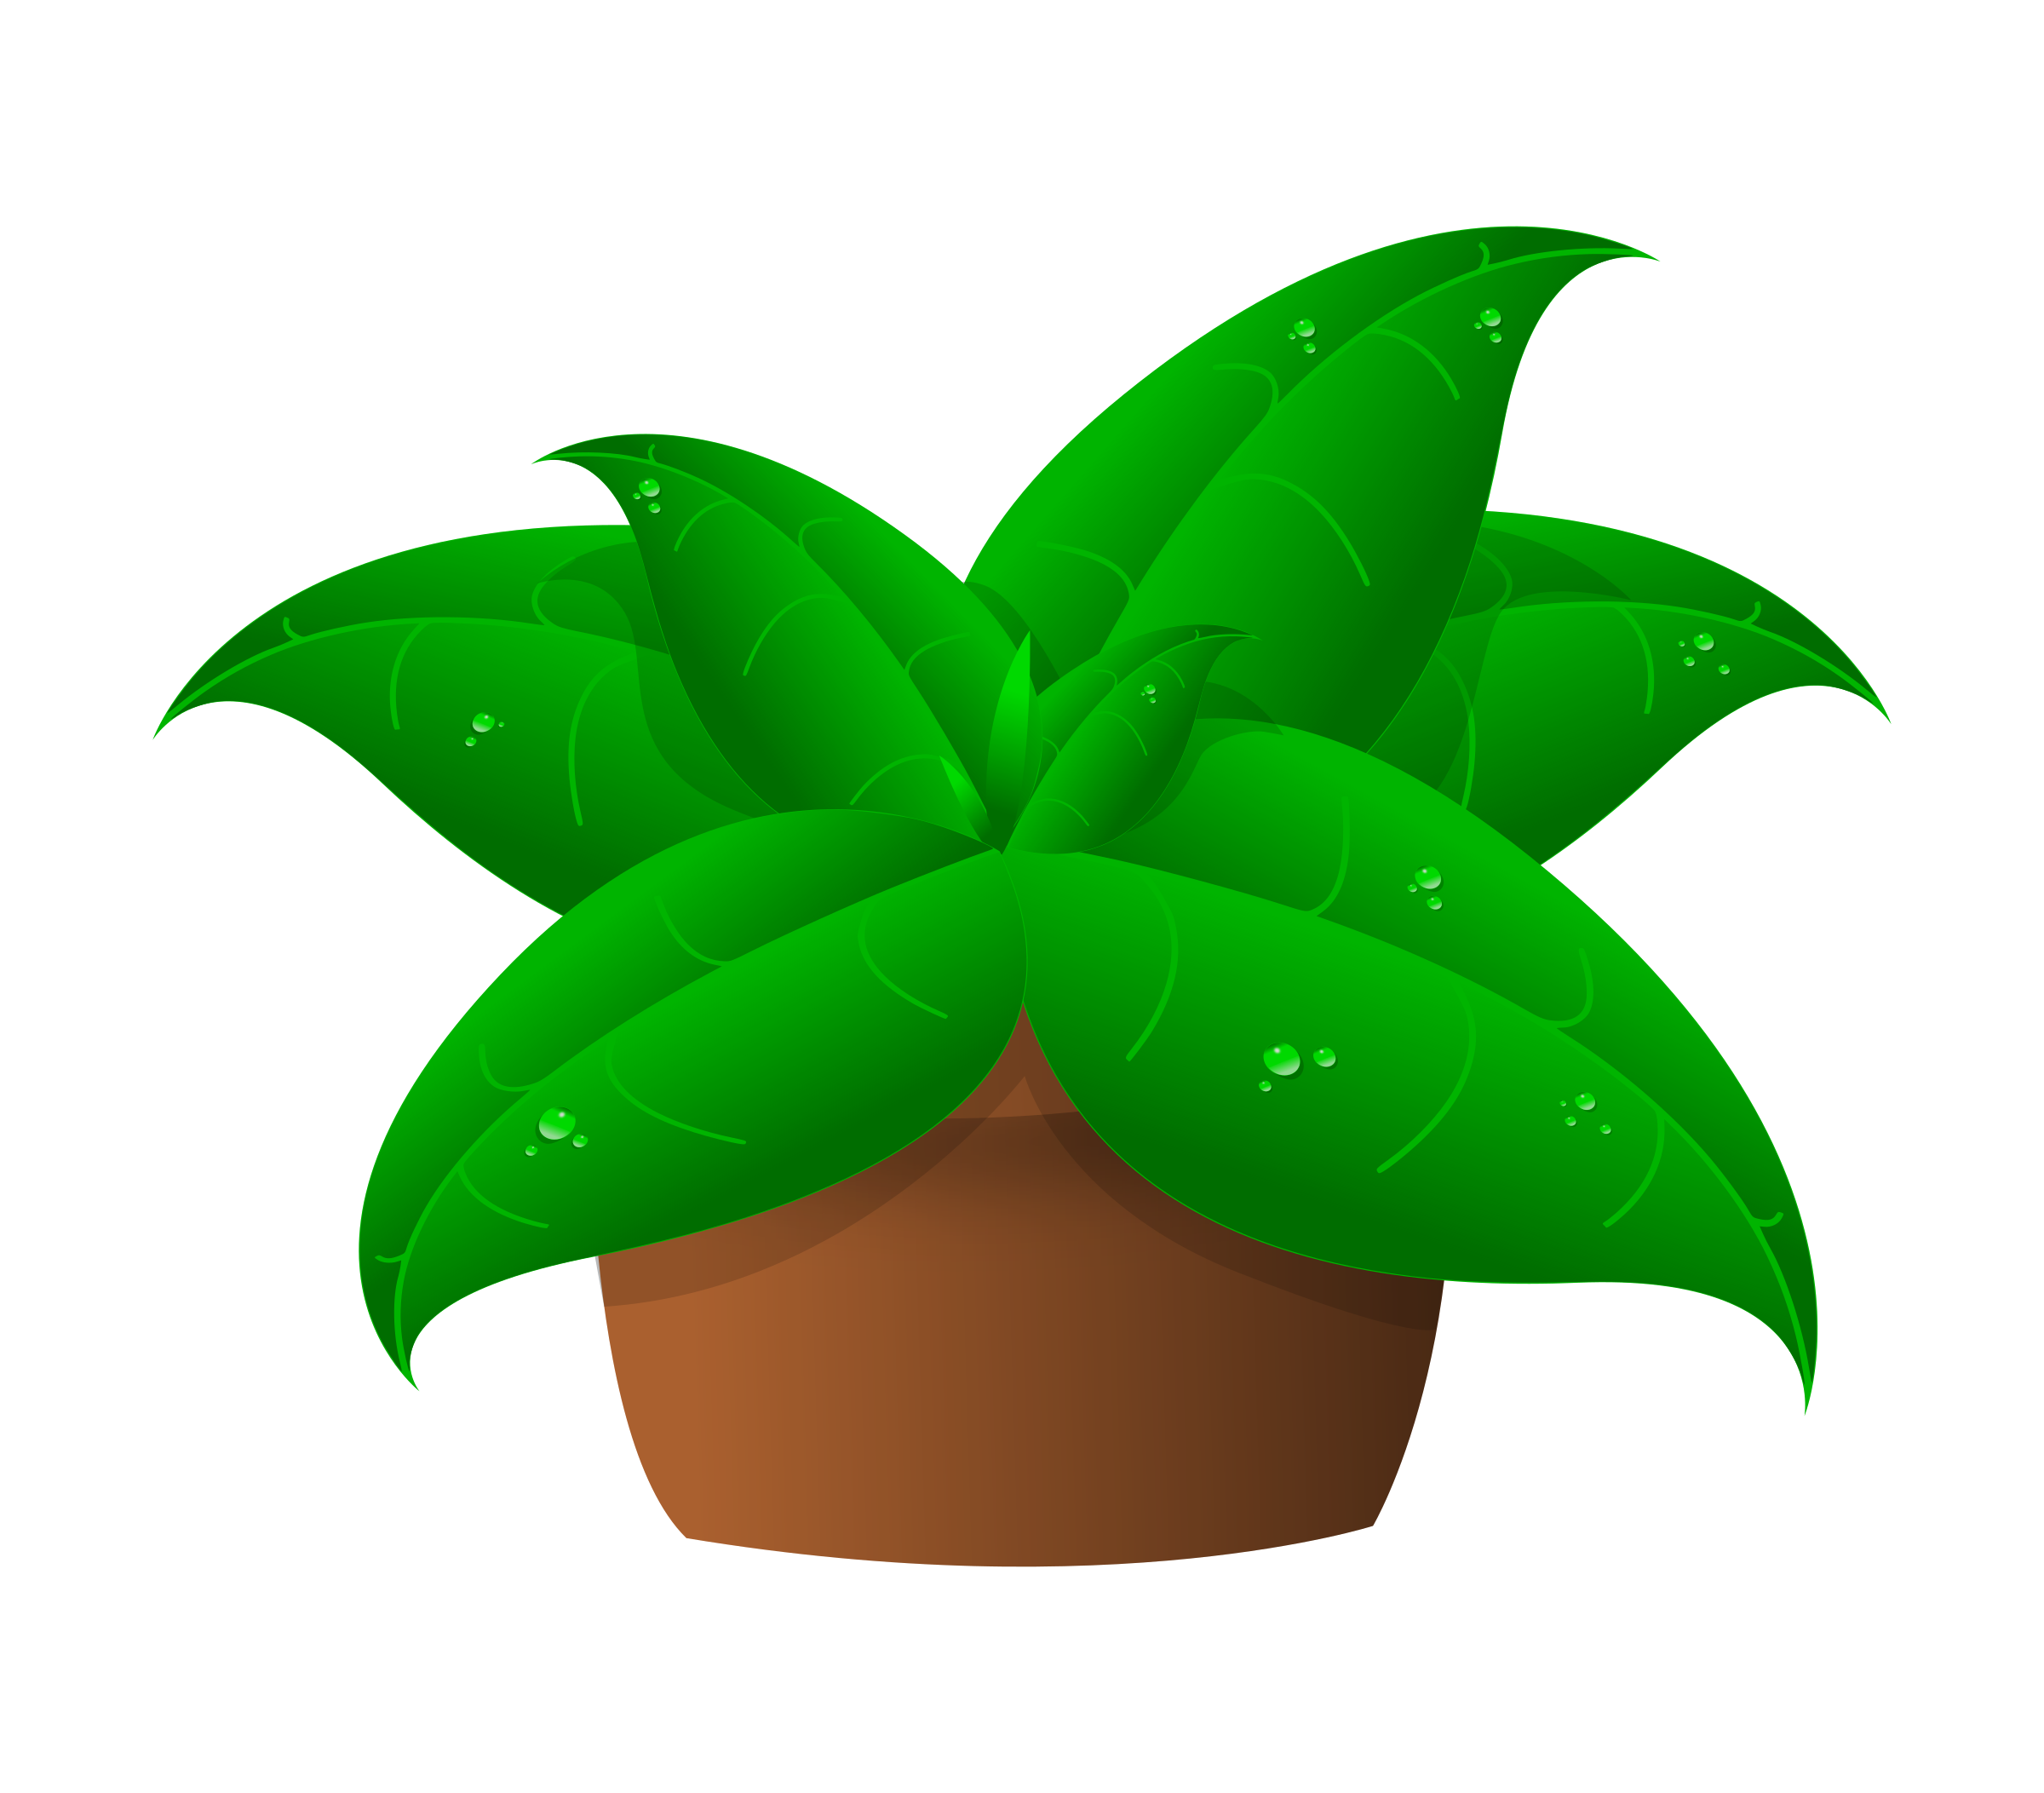 Weed svg clipart. Potted plants science plant